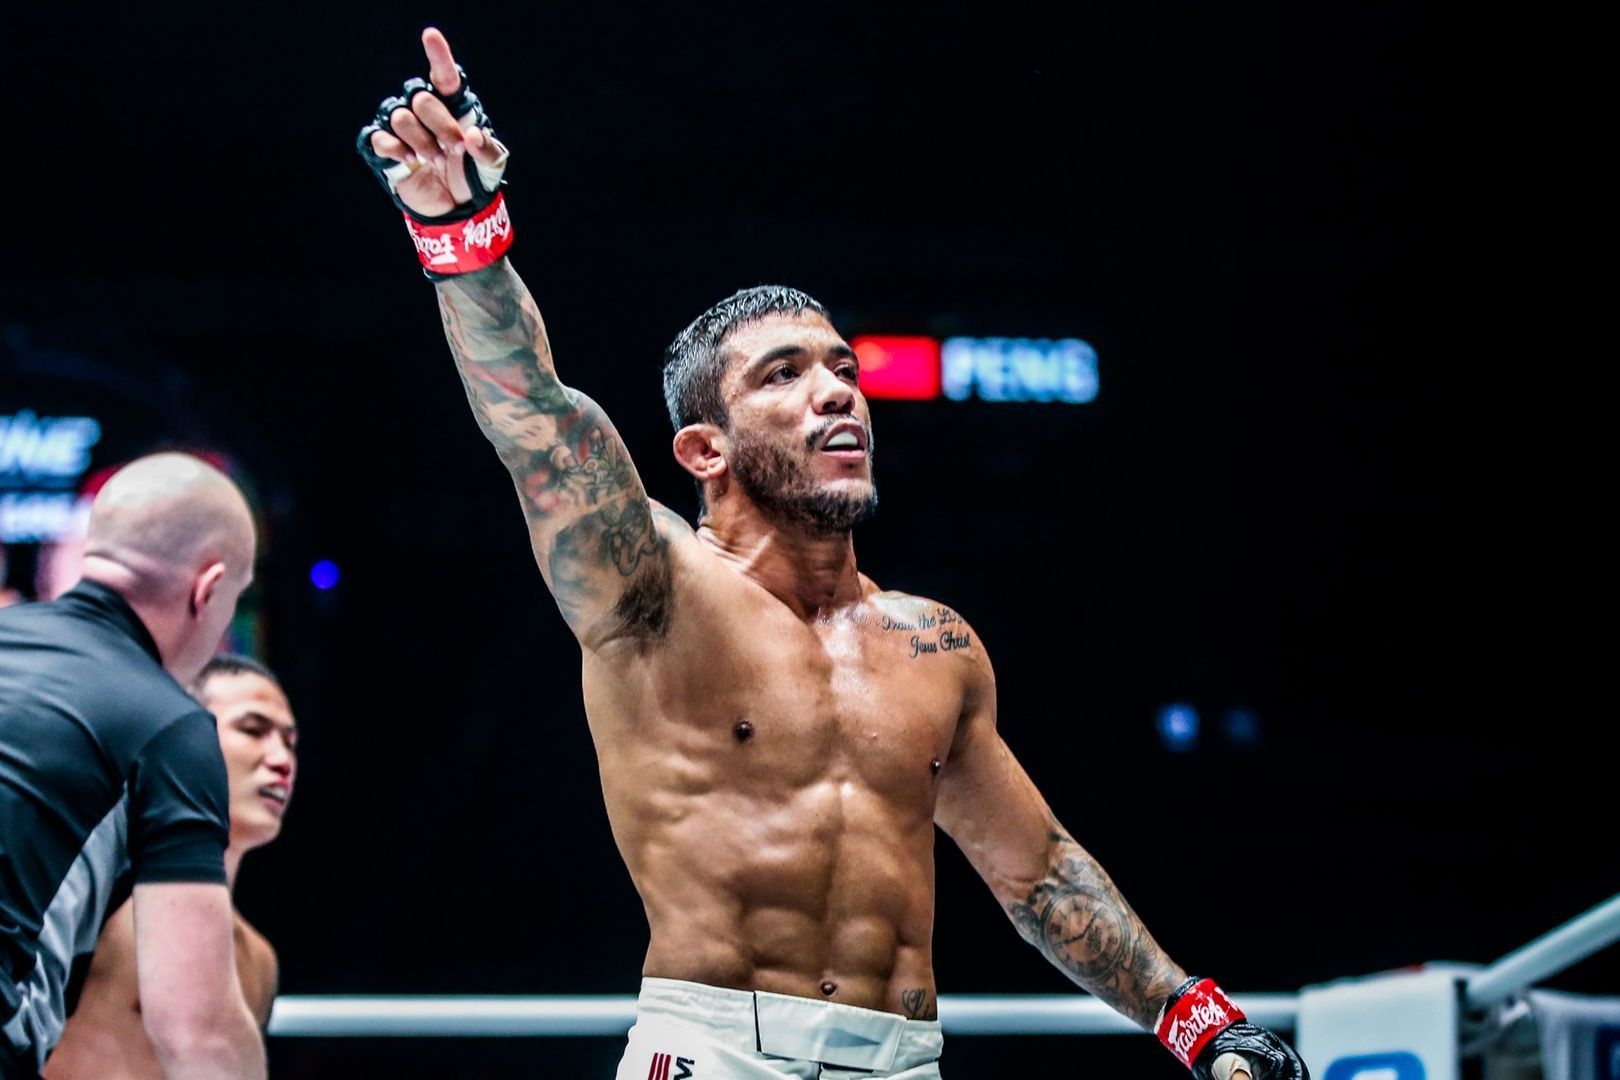 Brazilian mixed martial artist Alex Silva raises his hand in victory in November 2019